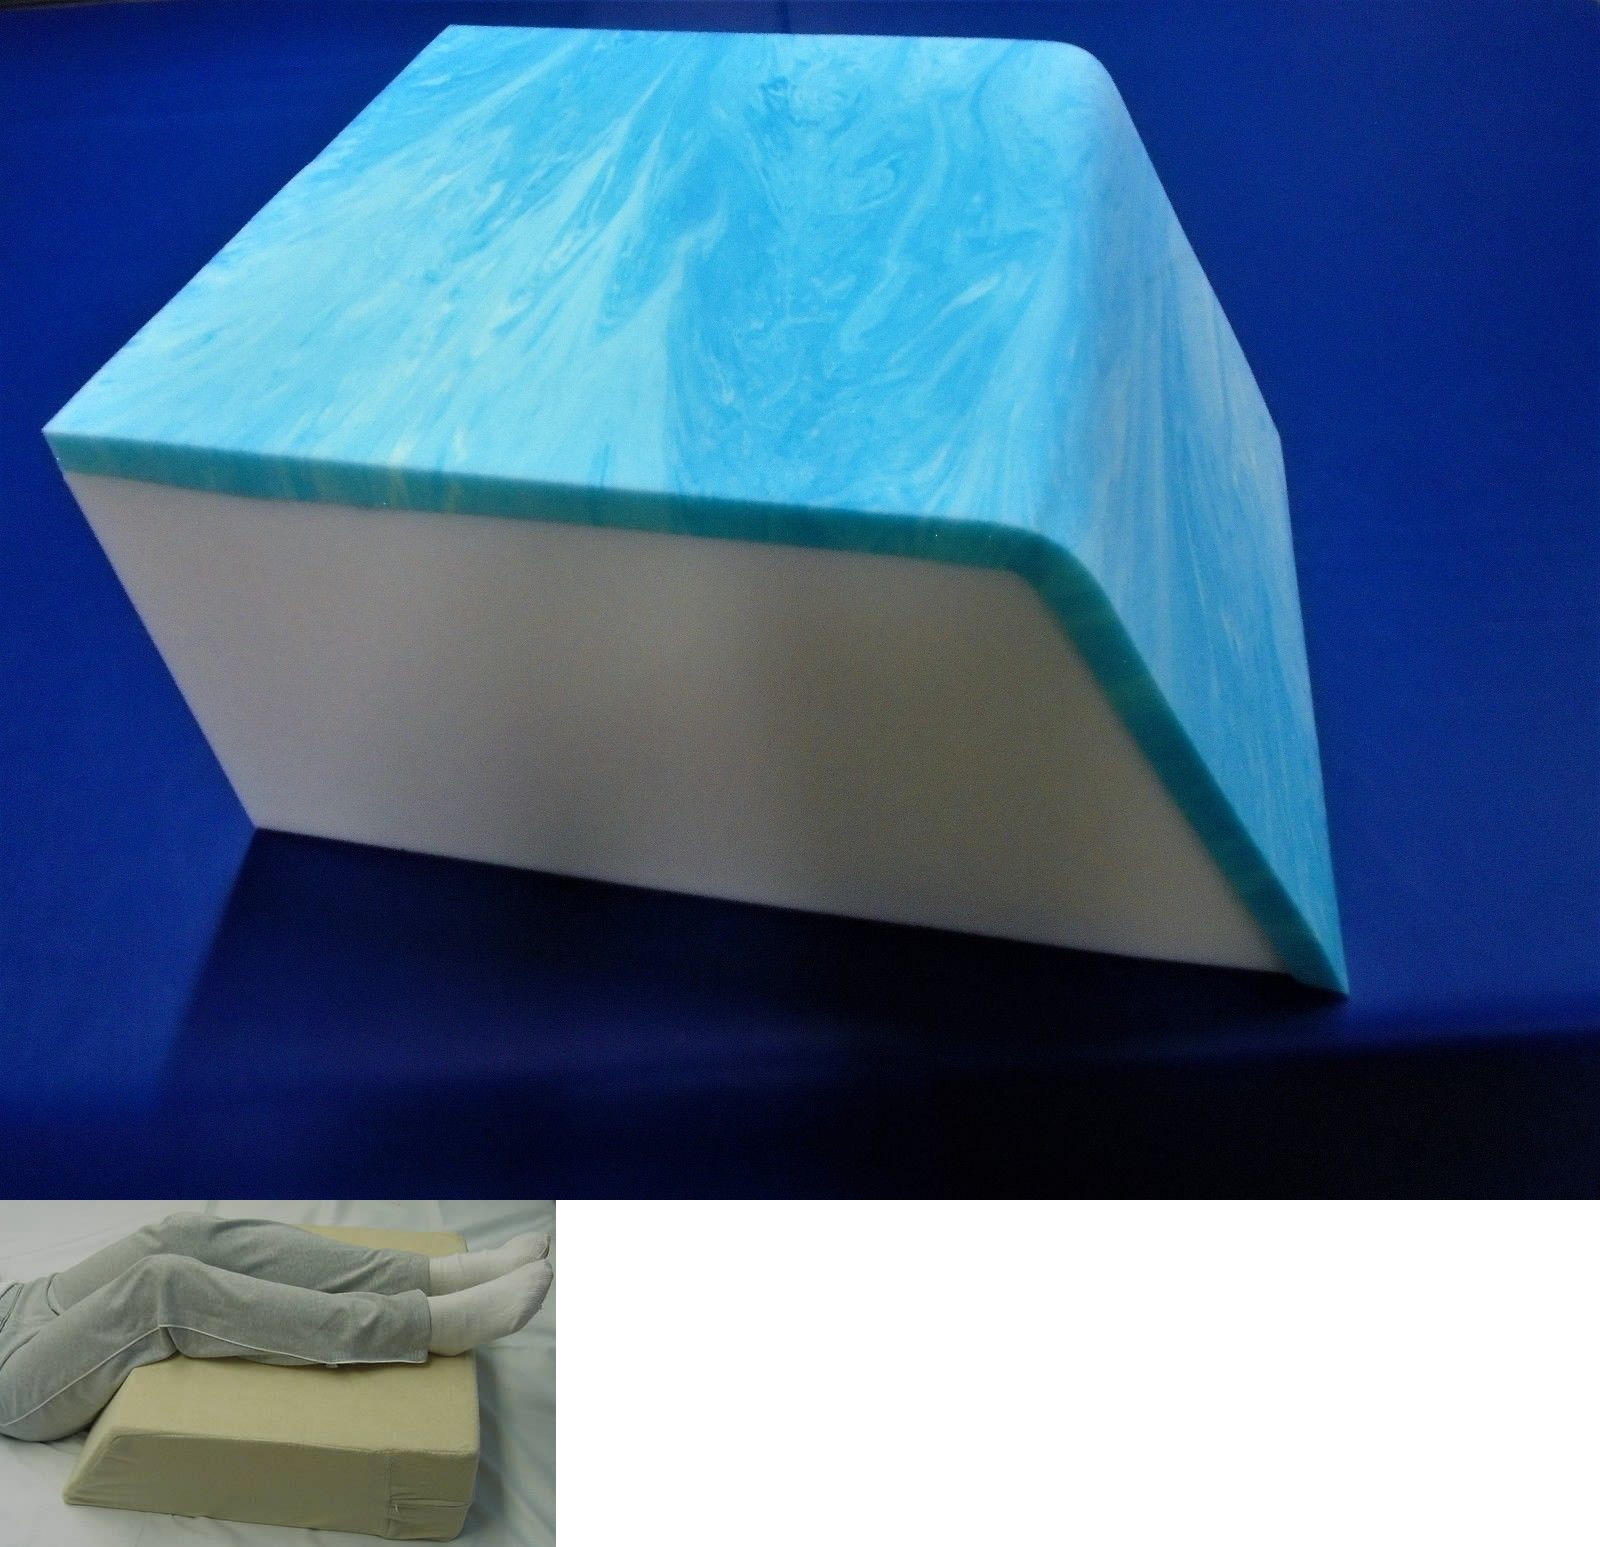 Wedges and bed positioners gel memory foam leg support foam wedge